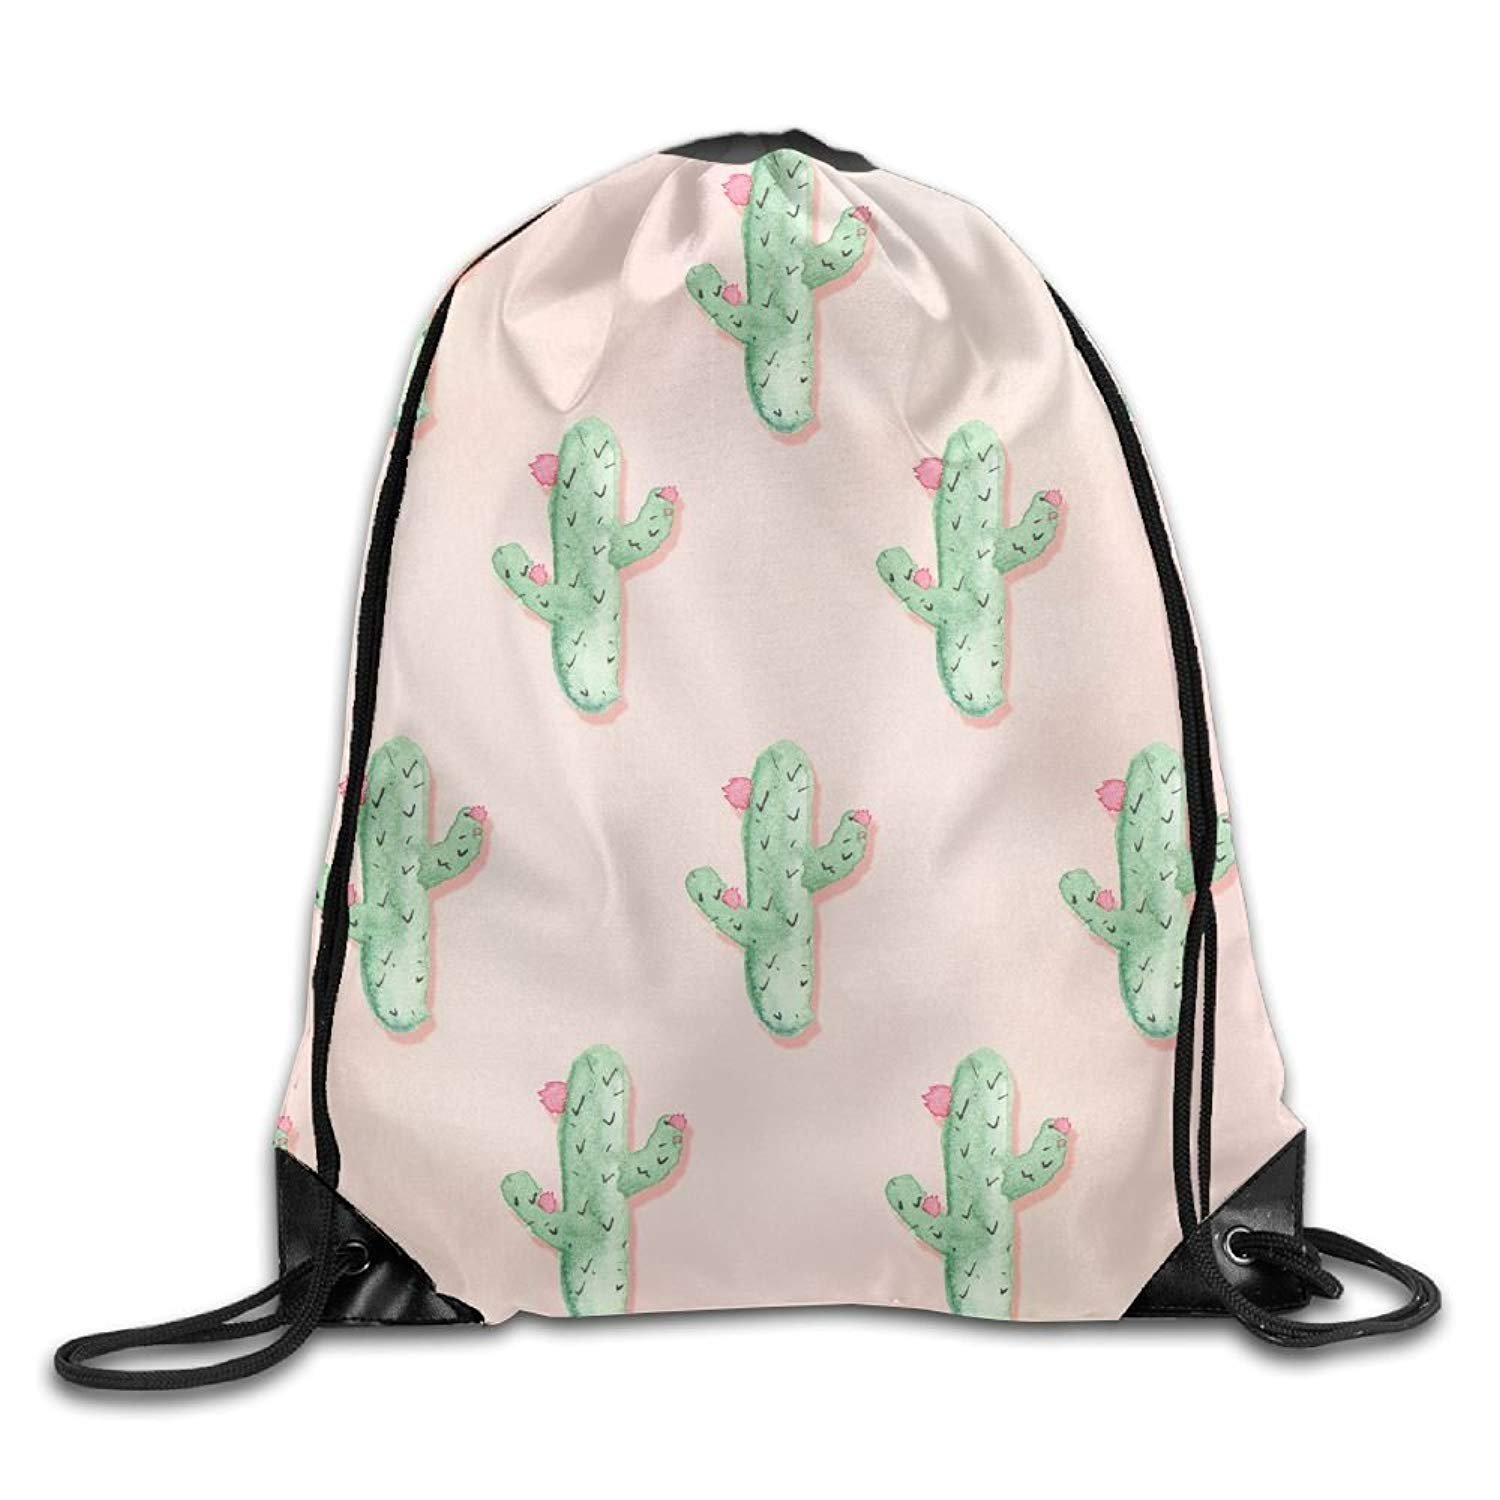 Gym Drawstring Bags Cactus Pattern Background Draw Rope Travel Backpack Tote Student Camping